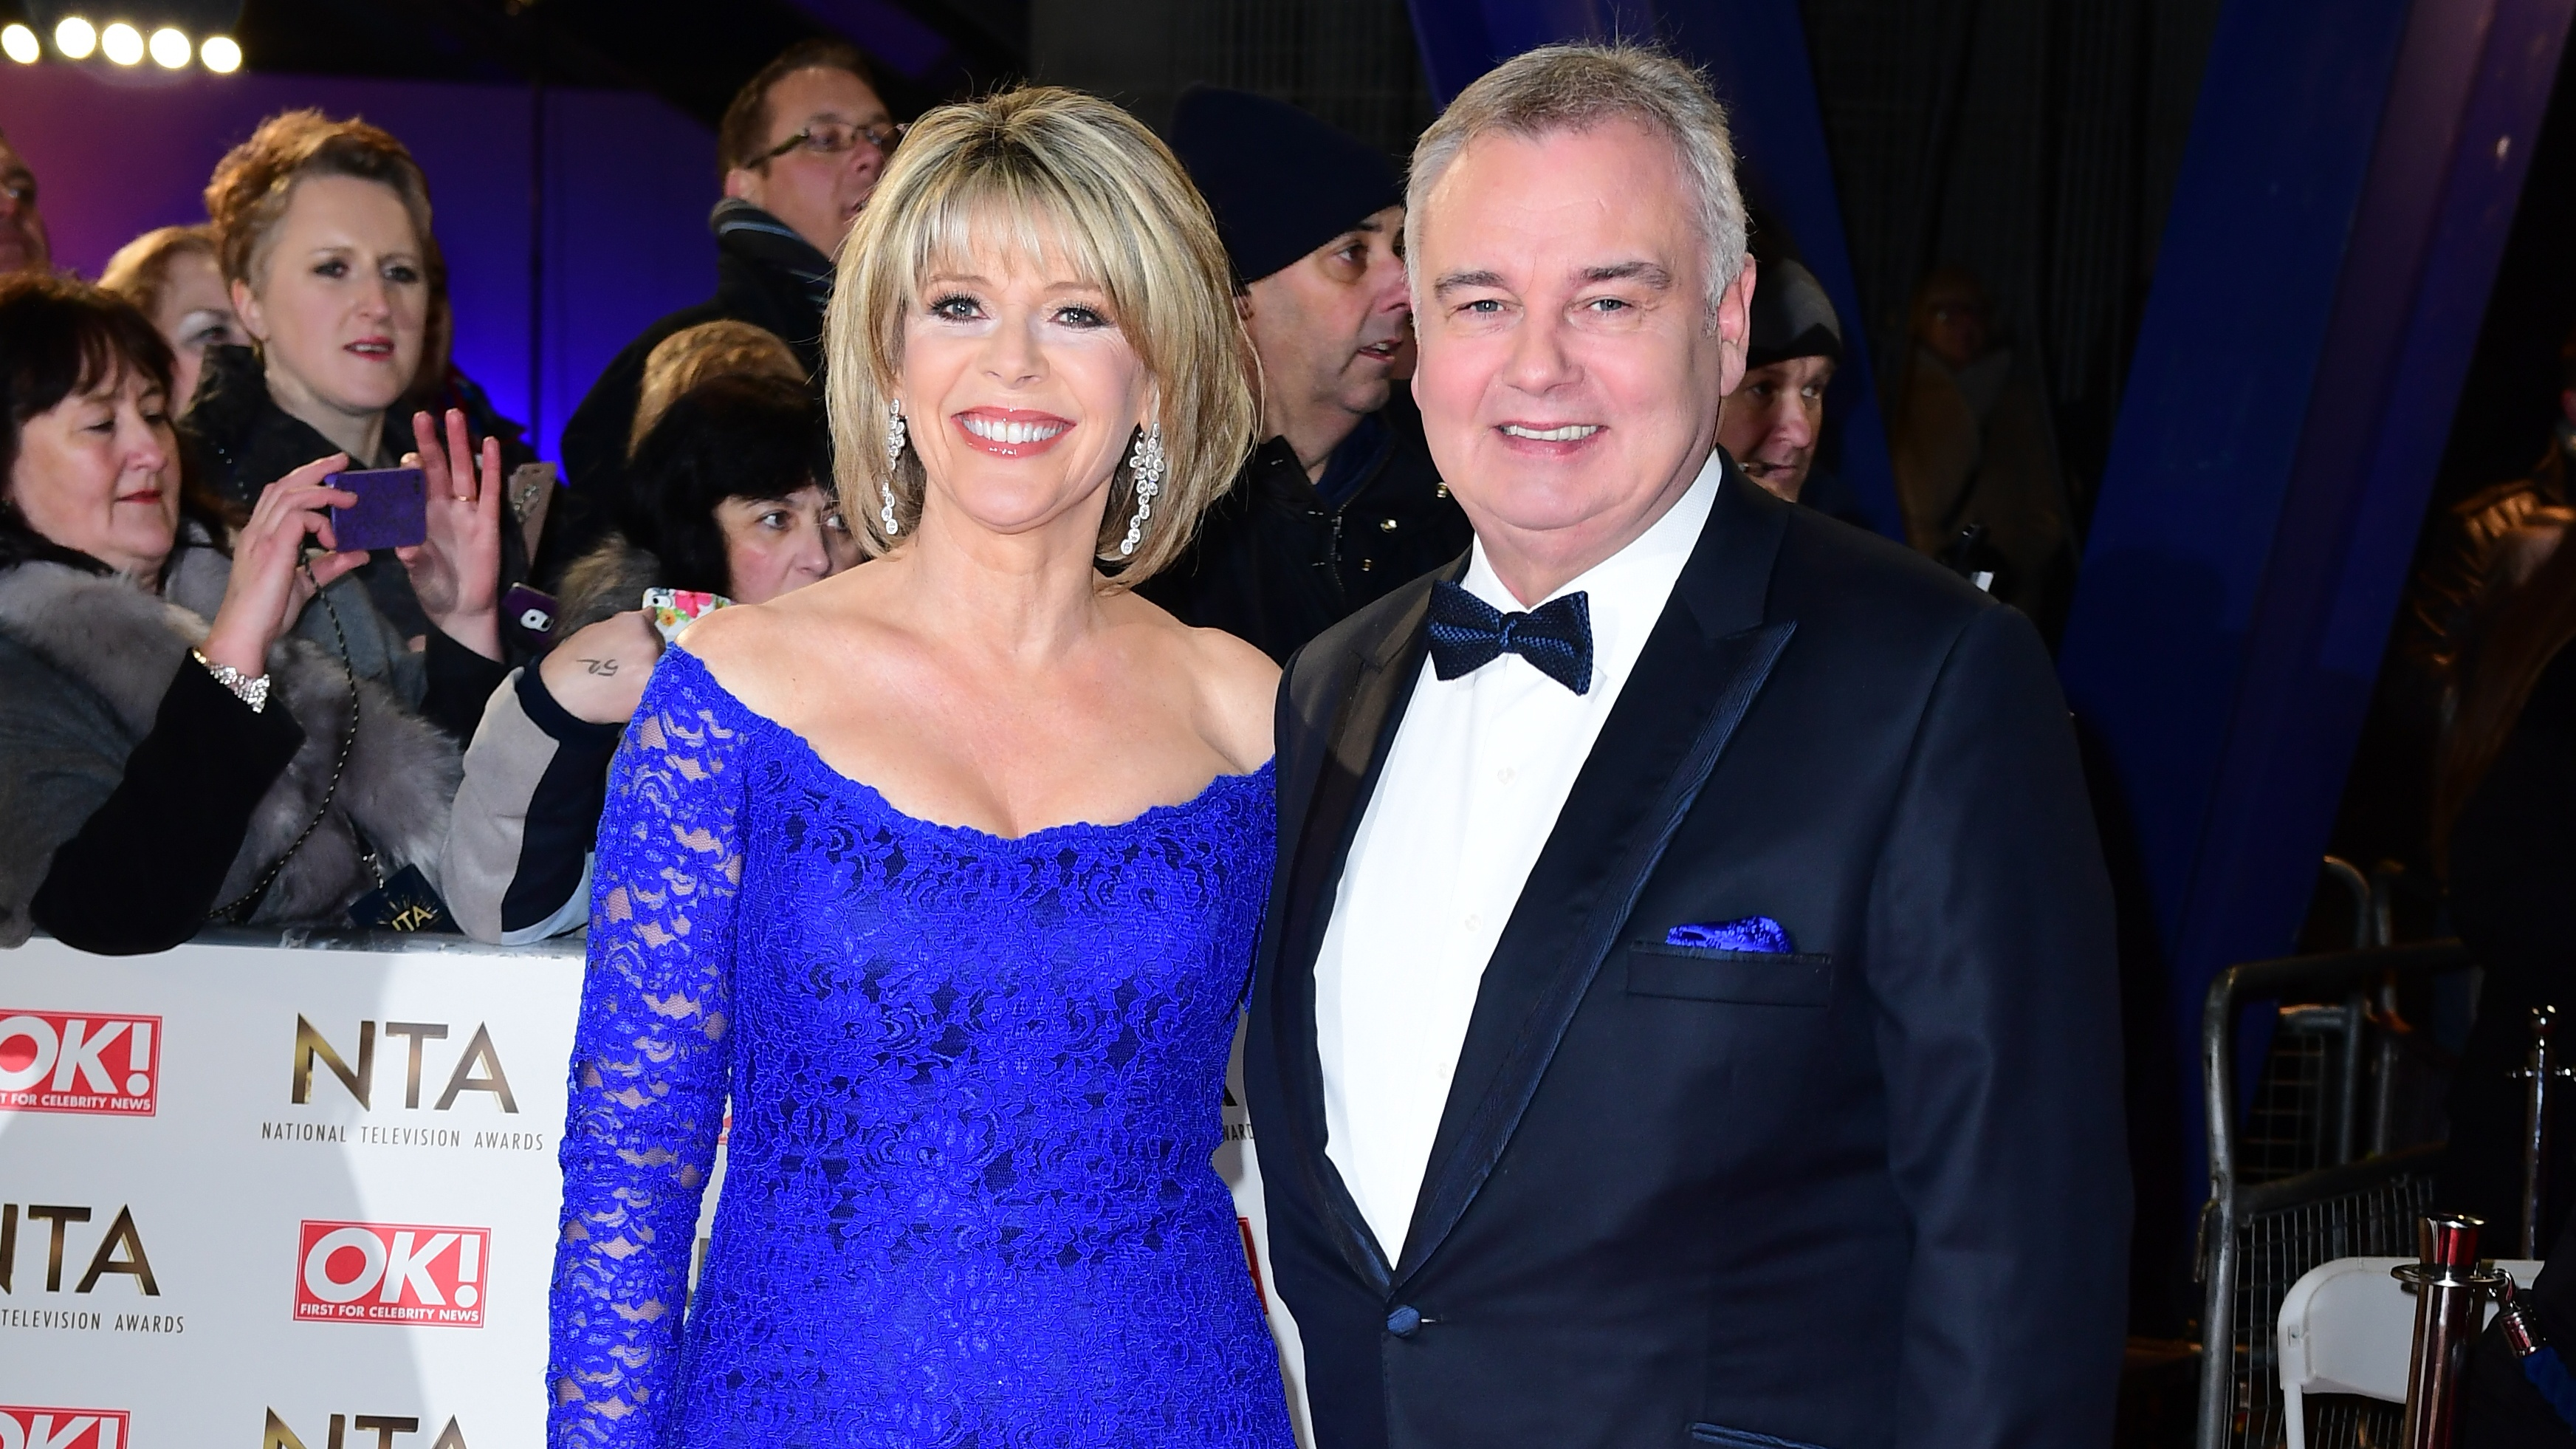 ruth langsford anton should dance with eamonn next the. Black Bedroom Furniture Sets. Home Design Ideas